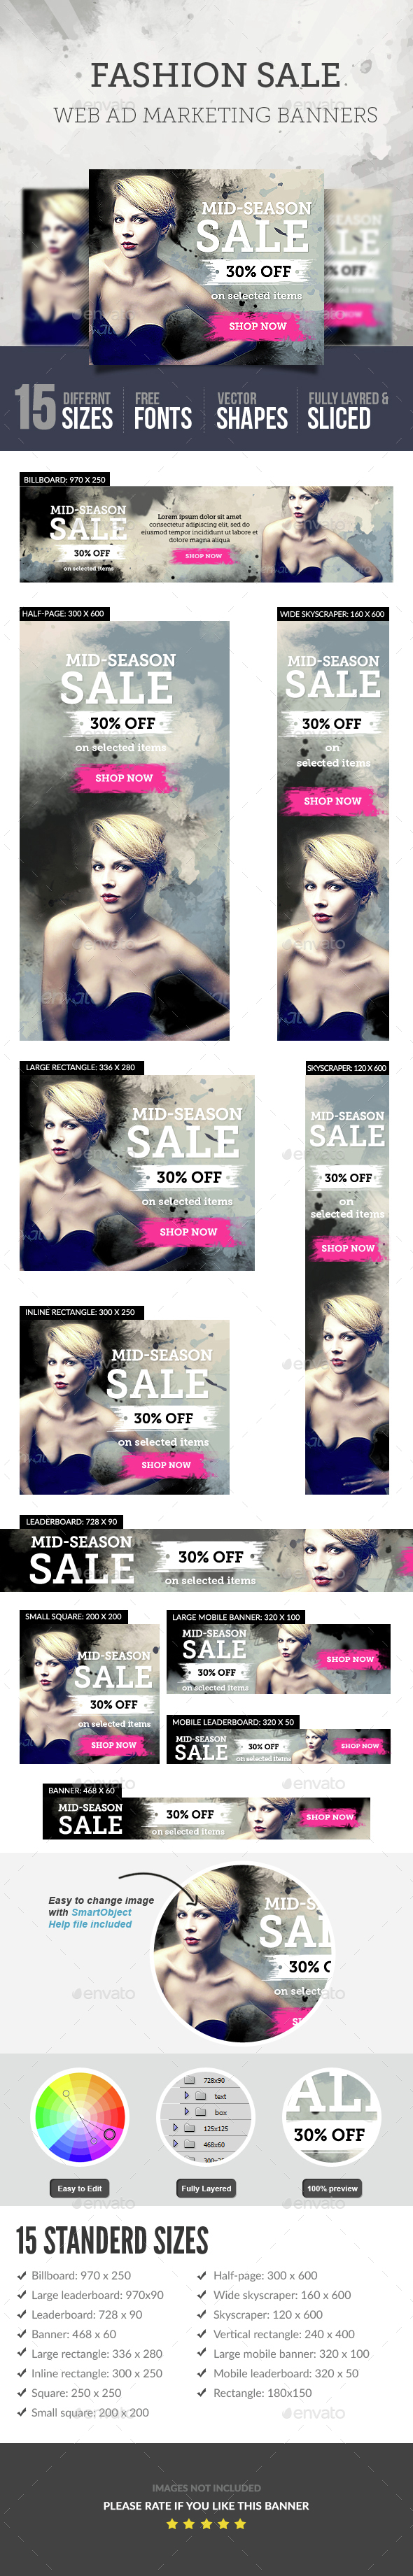 Fashion Sale Ad Banners - Banners & Ads Web Elements